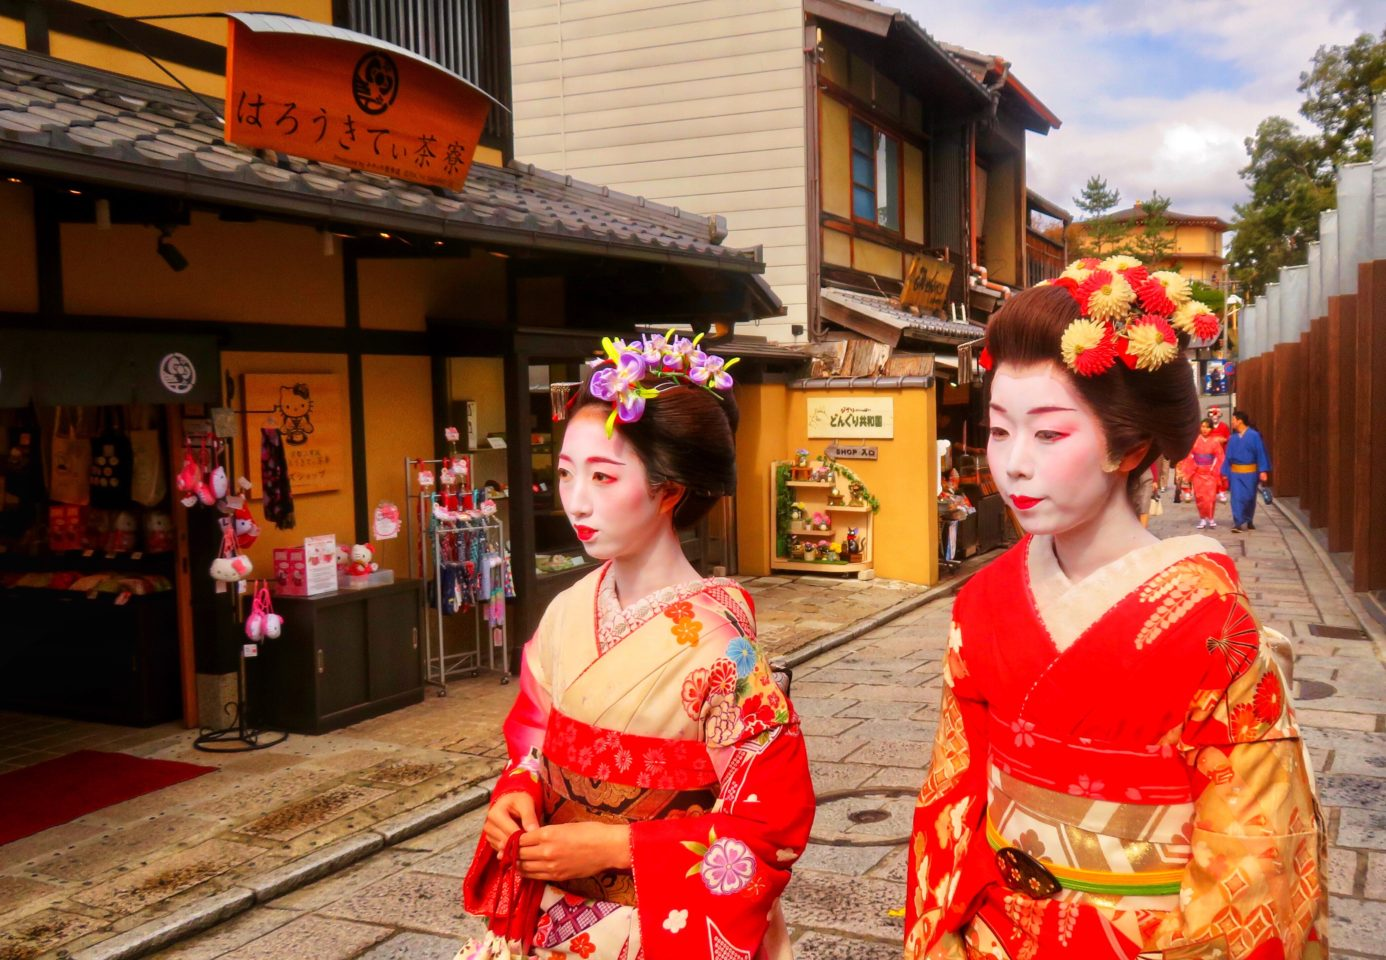 Japan Favorite Experiences ~ The Gion district in Kyoto Japan